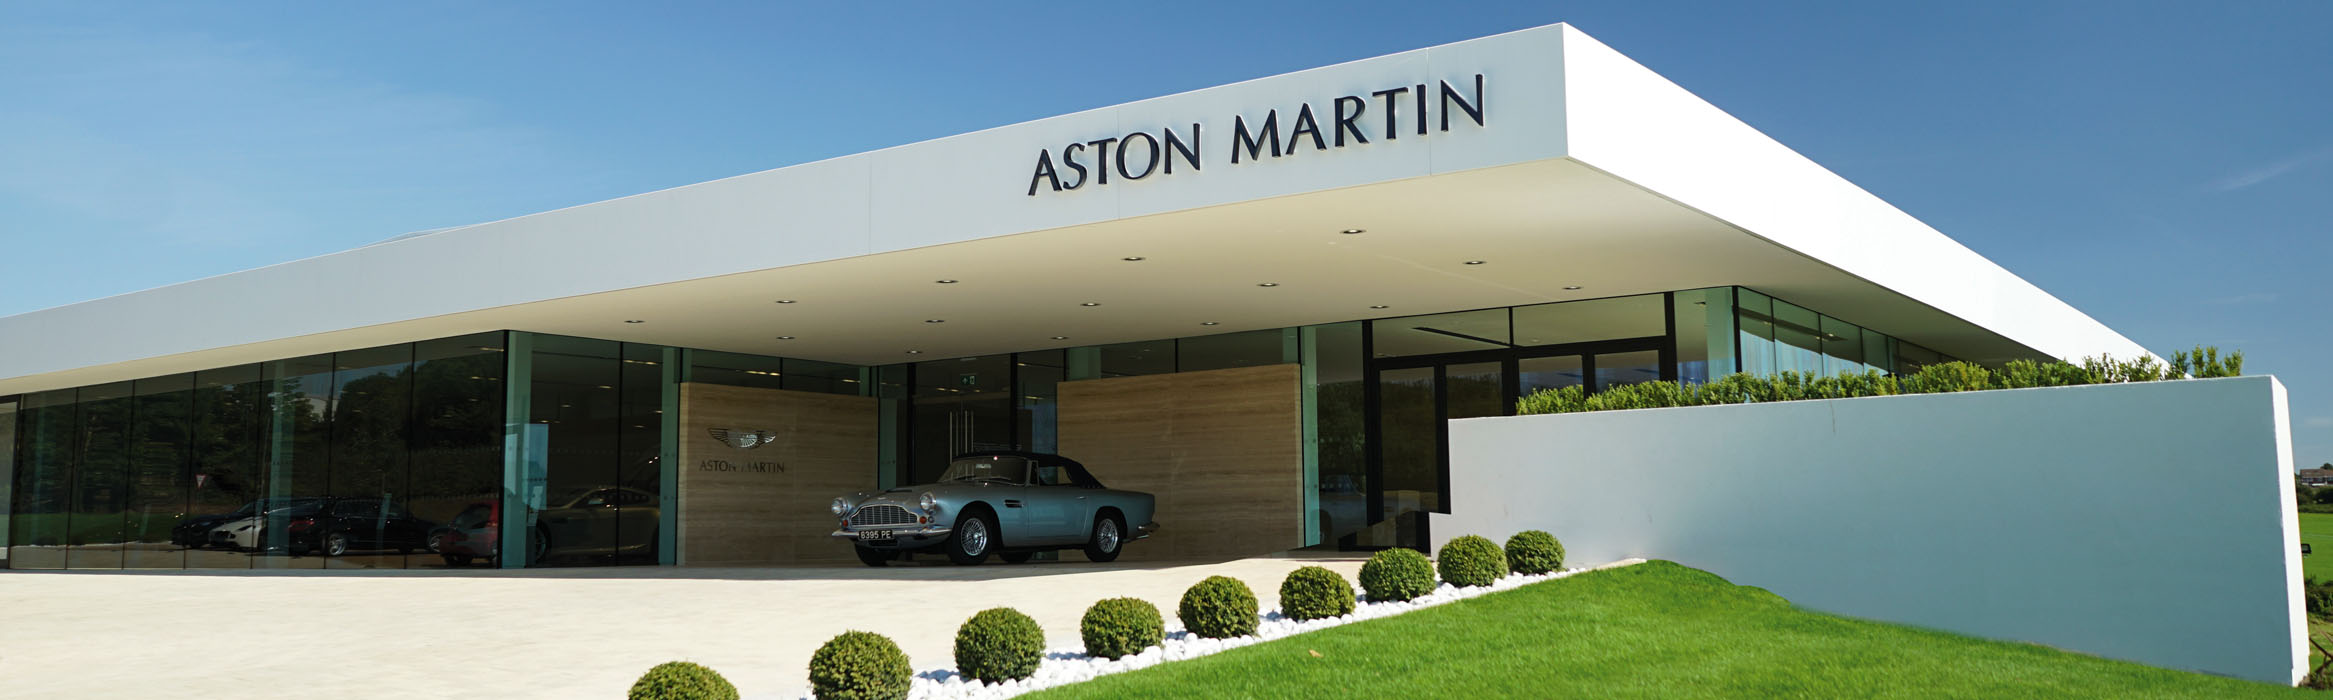 Aston Martin Bristol Official Aston Martin Dealer - Aston martin dealerships